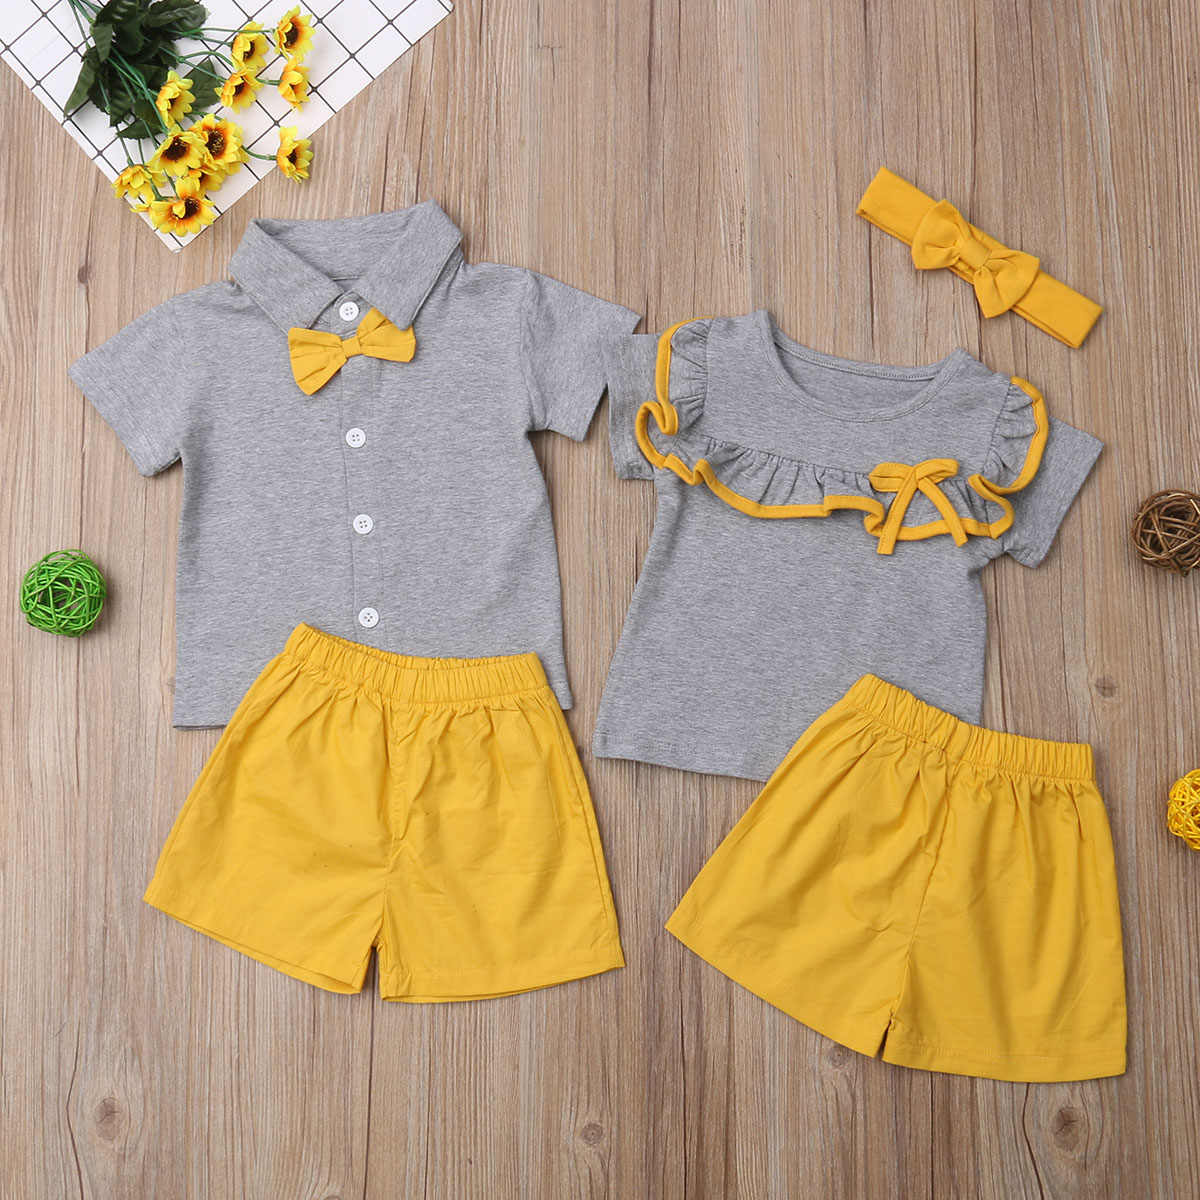 cf0ae0c7a Detail Feedback Questions about Kids Baby Clothes Set Big Little ...